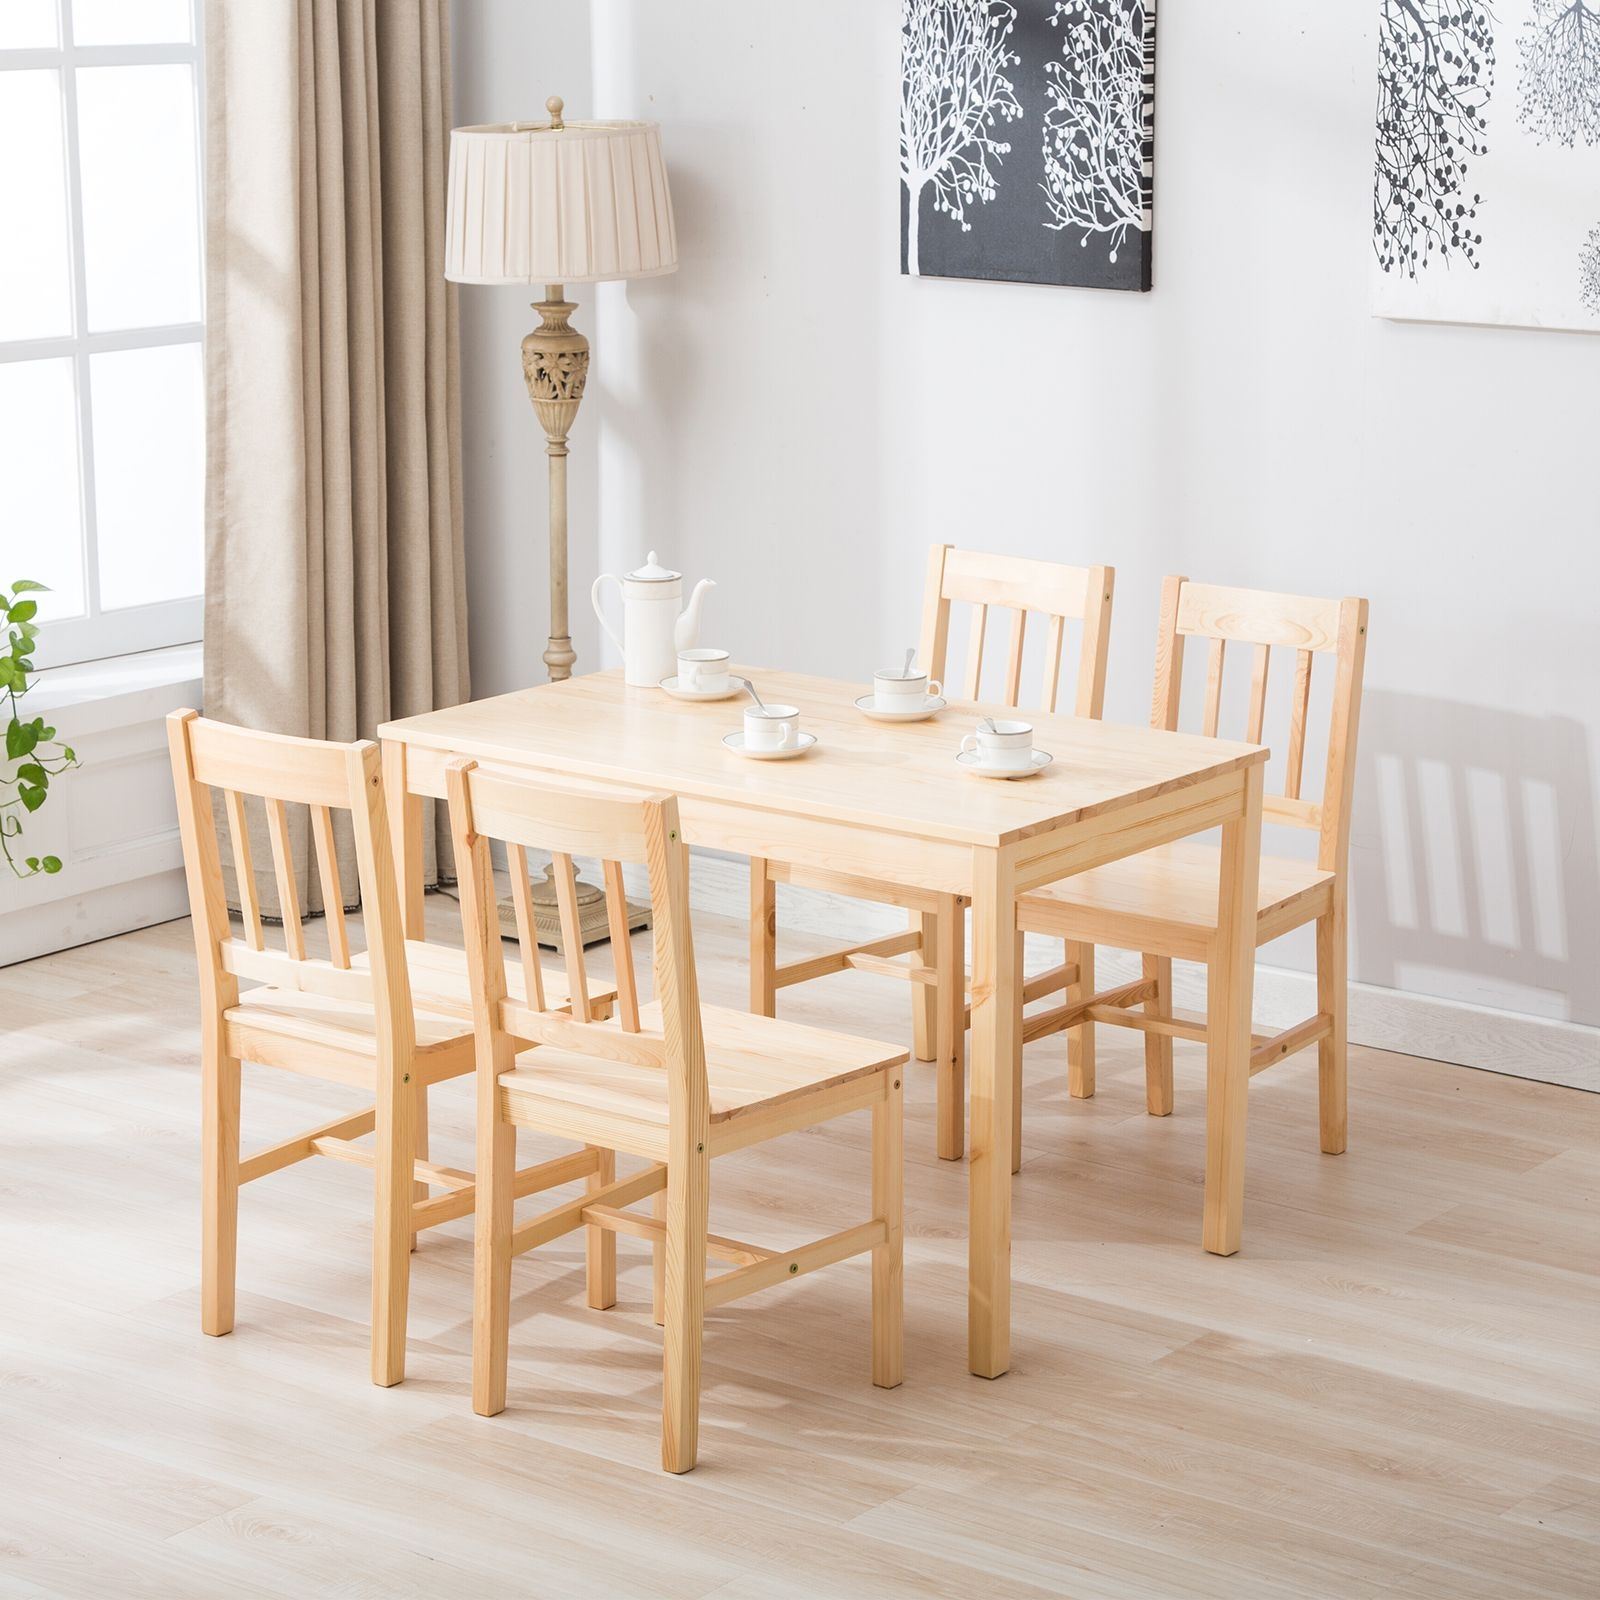 5 Pcs Pine Wood Dining Table And Chairs Dining Table Set Kitchen Dining Room 733430877620  Ebay